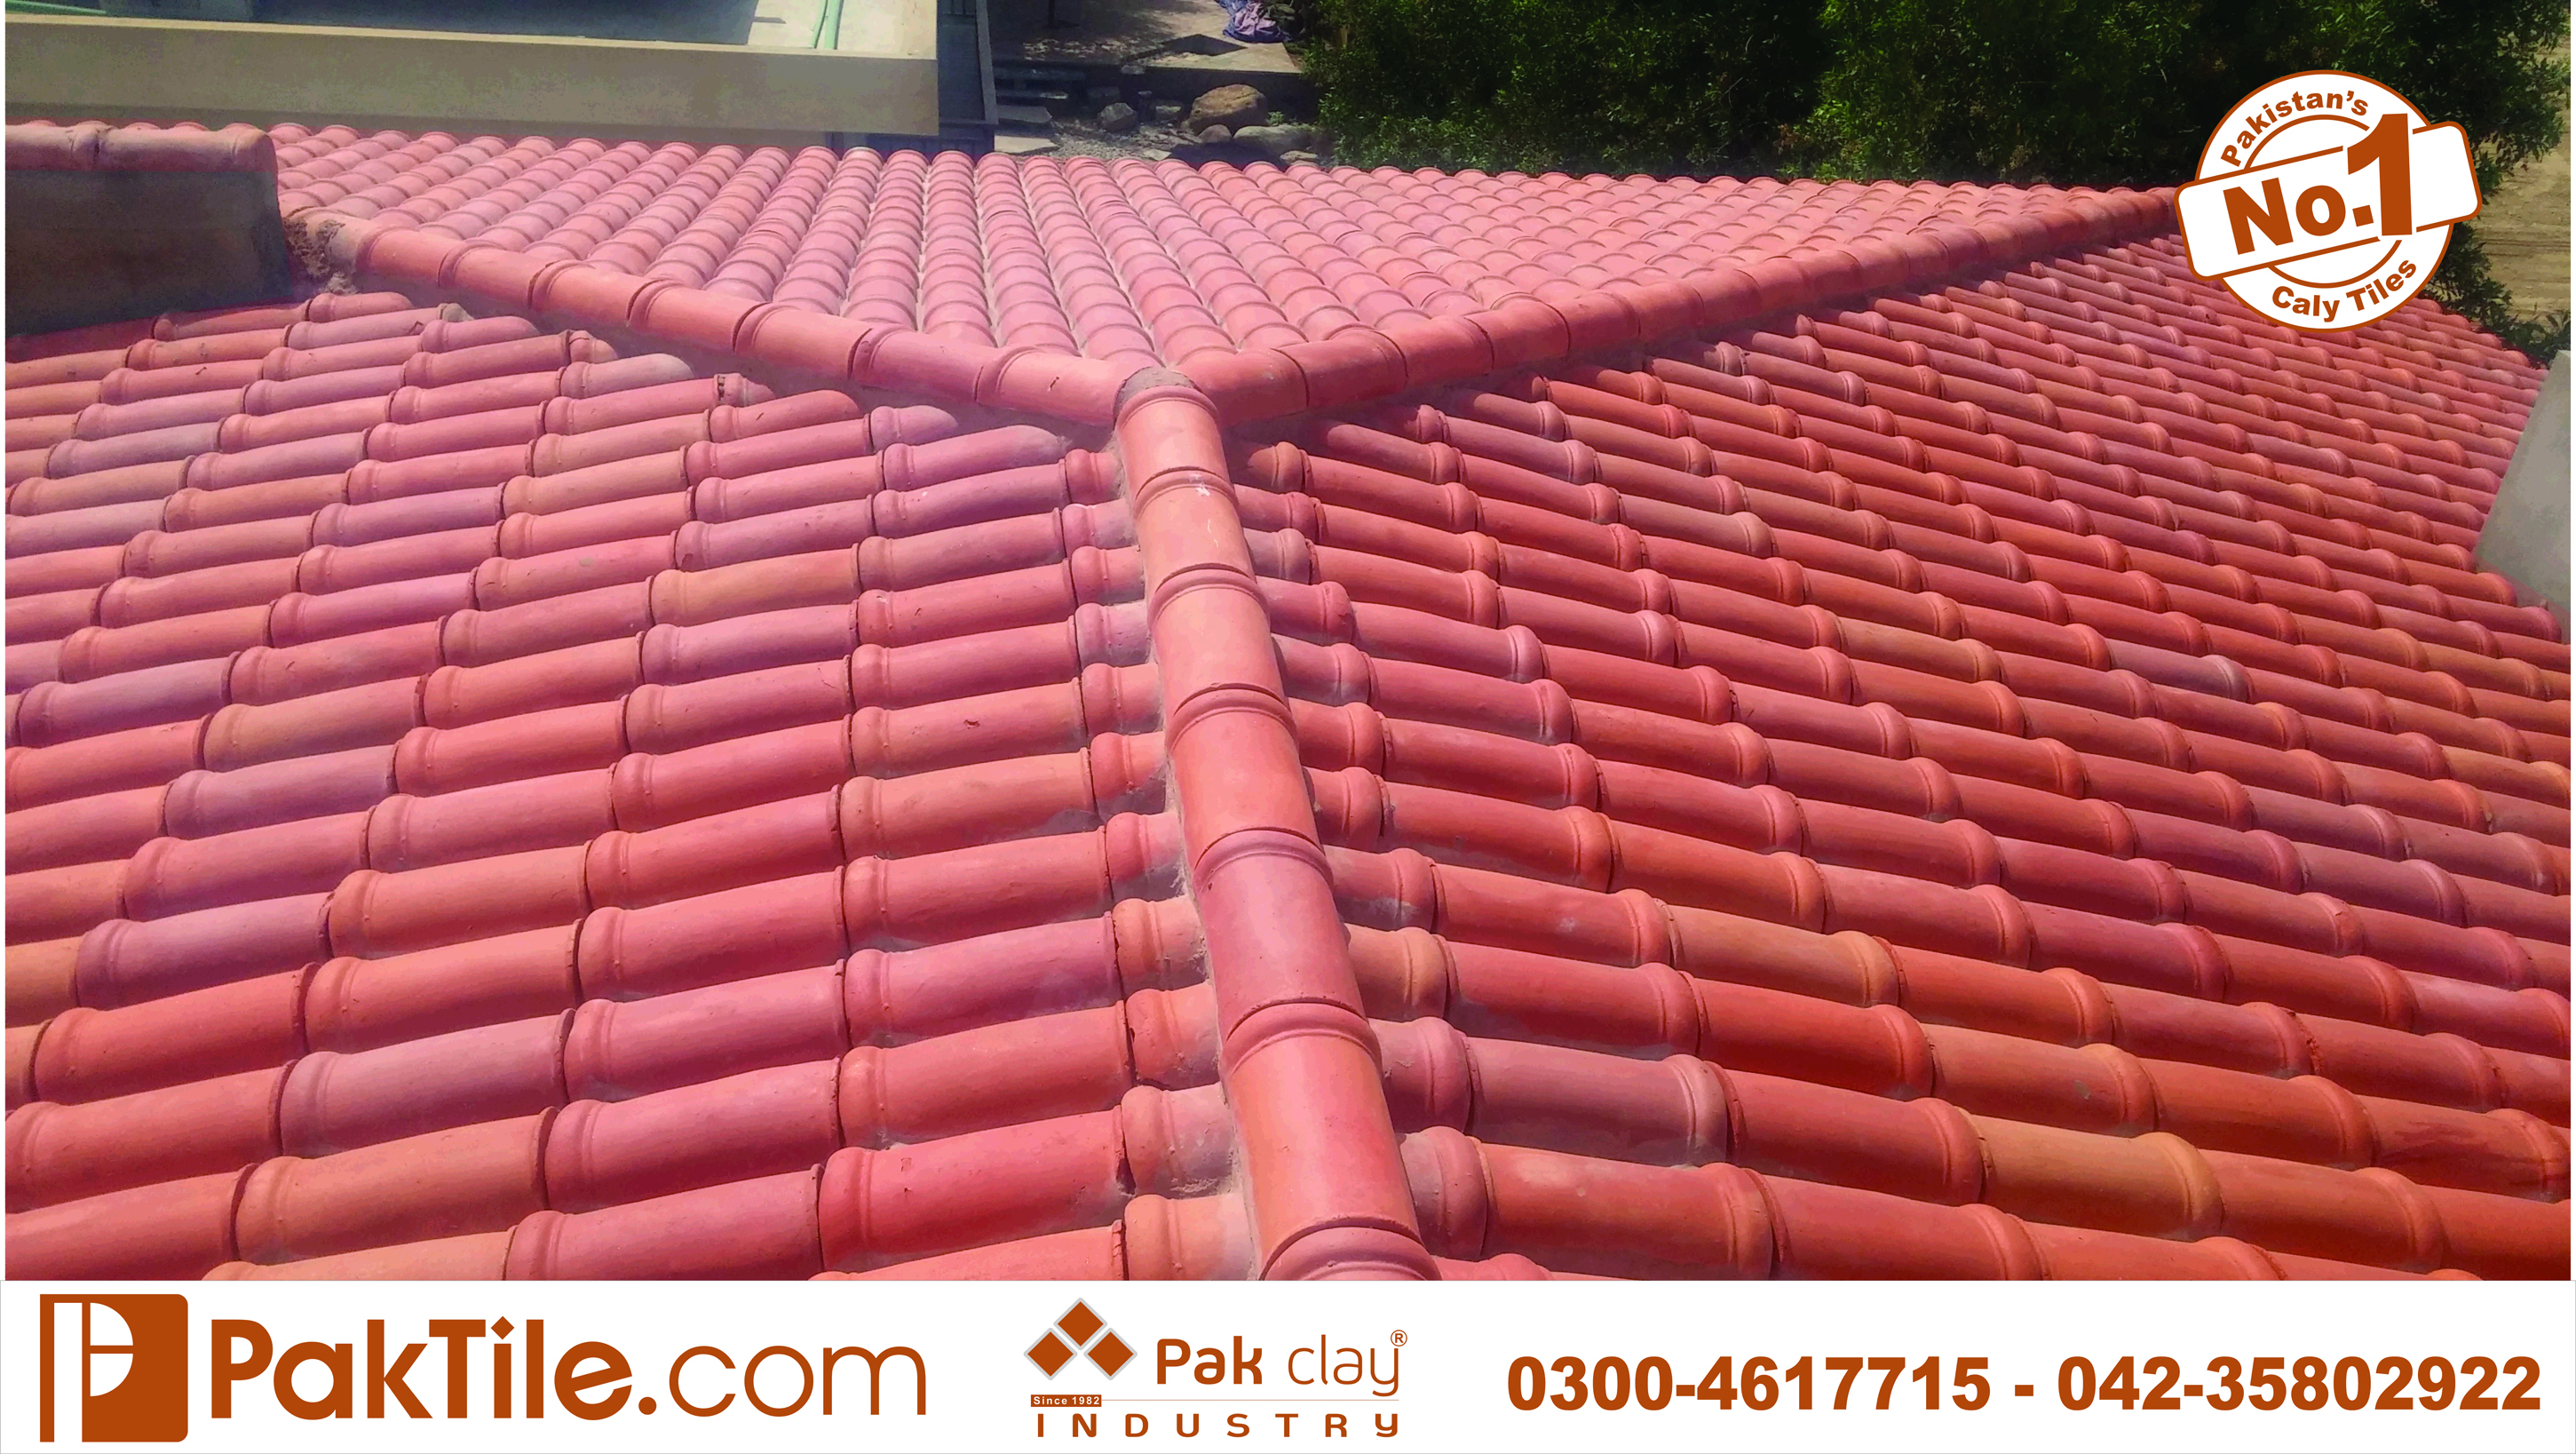 Best sloped shed waterproofing materials pak clay best terracotta bricks unglazed khaprail roof tiles price in pakistan